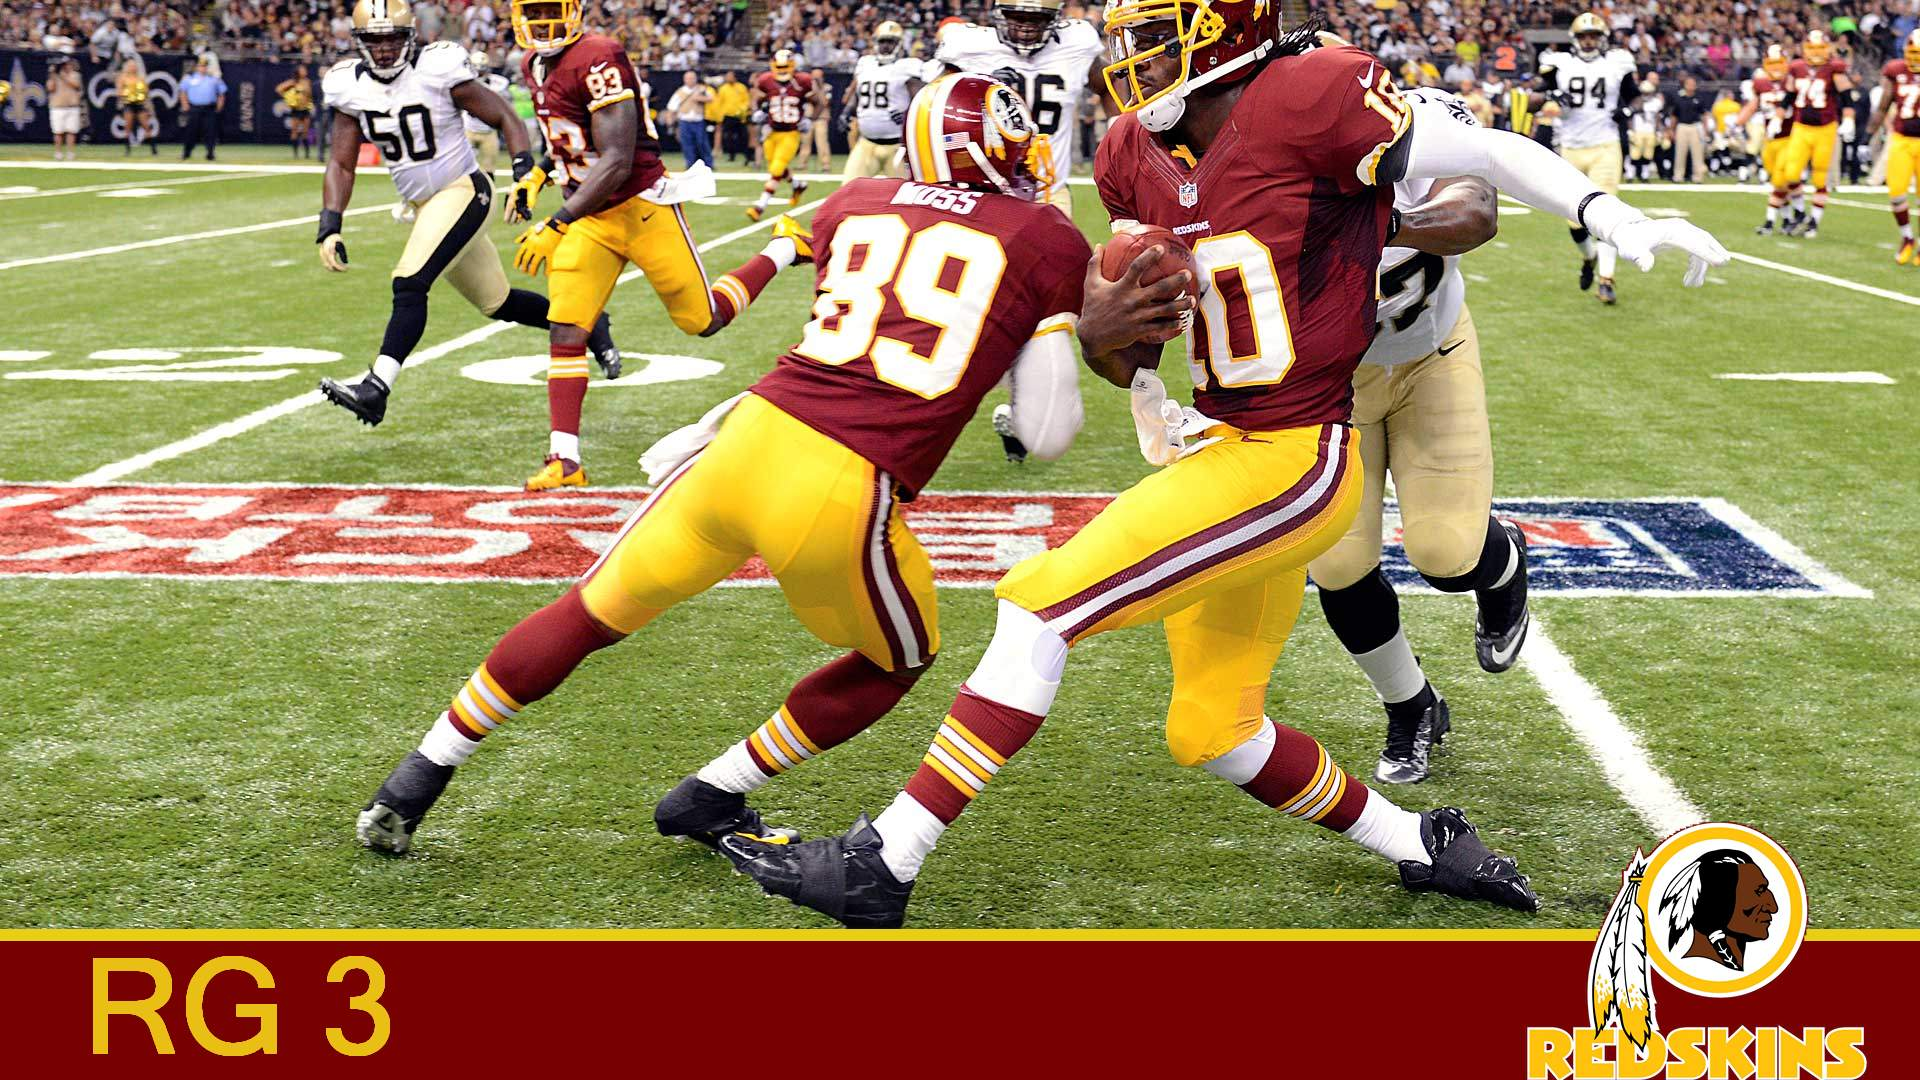 Washington Redskins wallpapers backgrounds